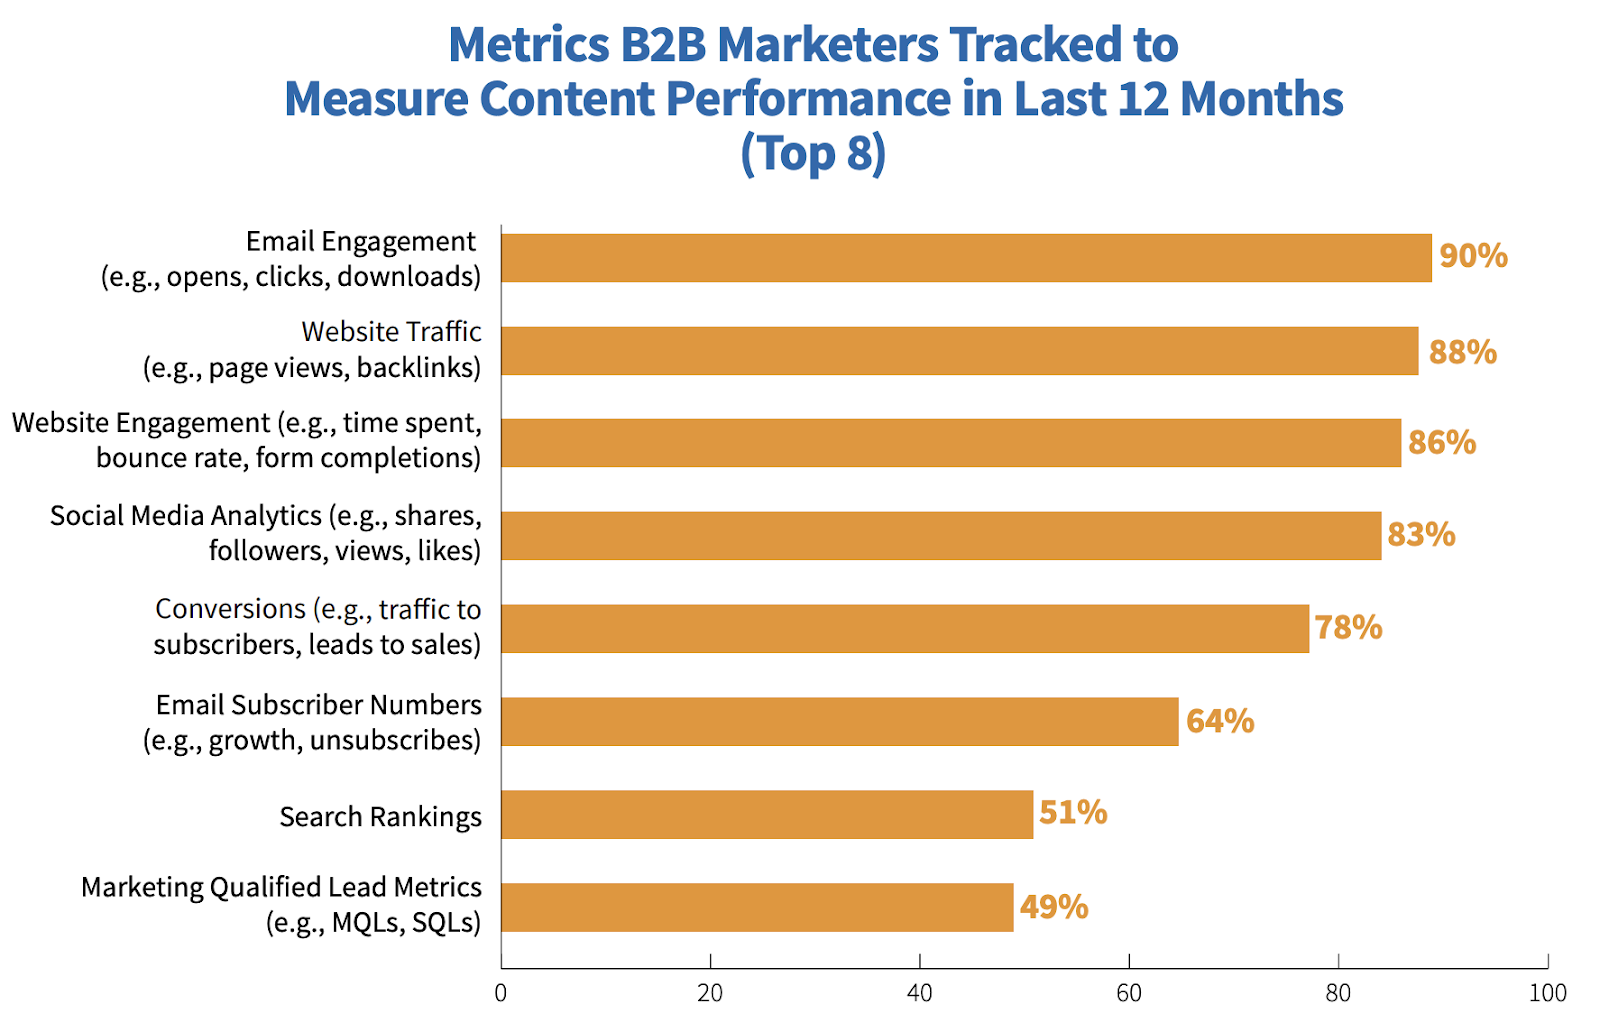 Metrics tracked by B2B marketers to measure content performance